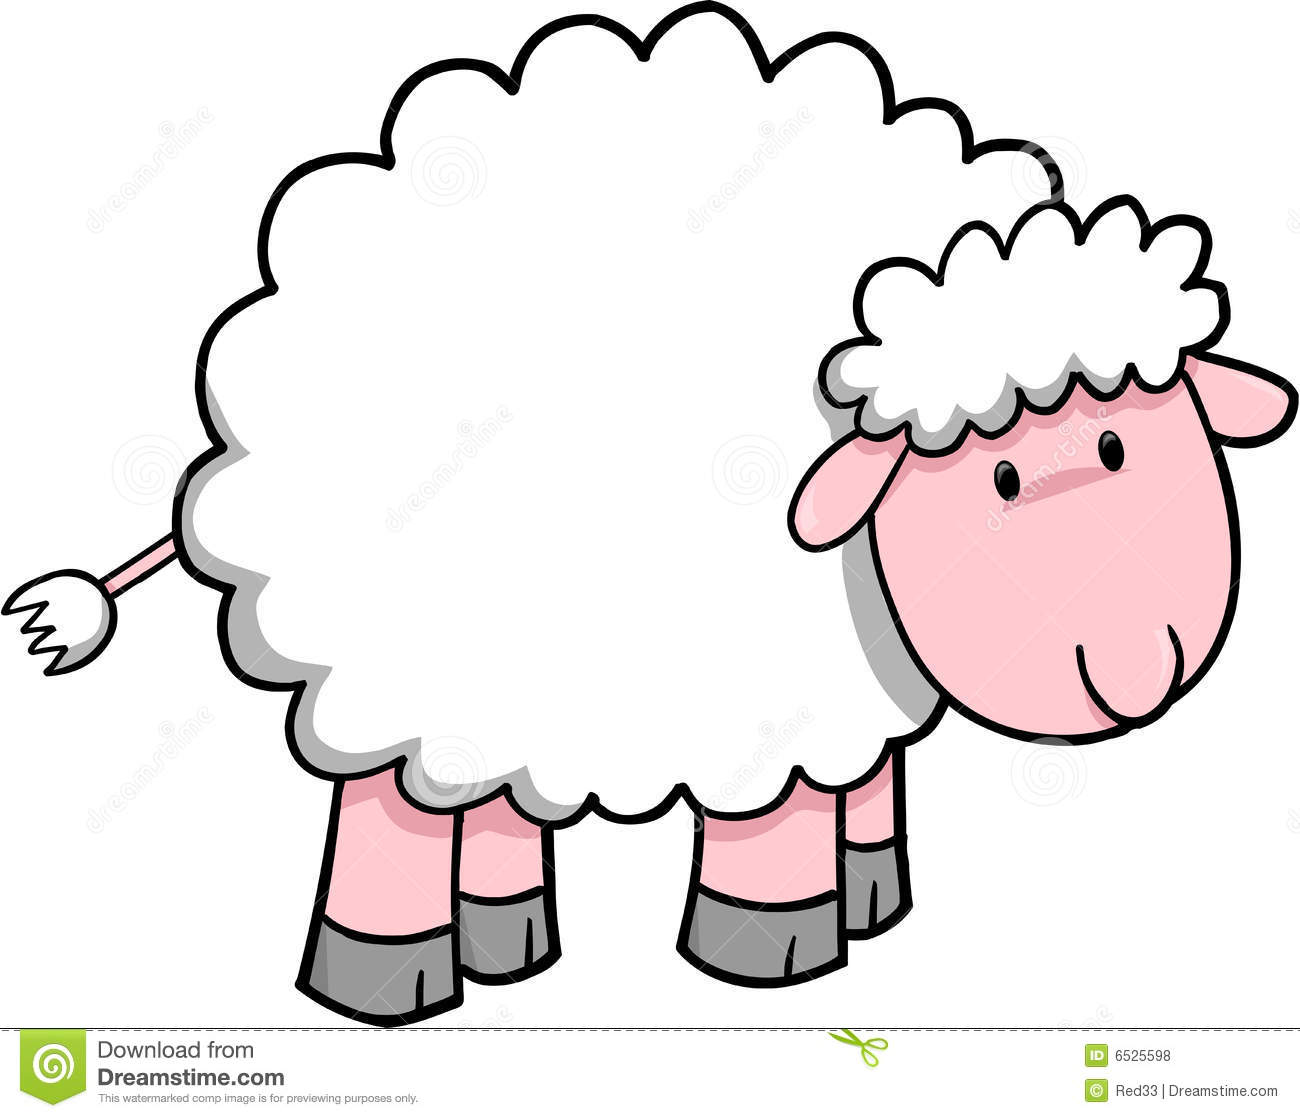 97+ Sheep Clipart Free.